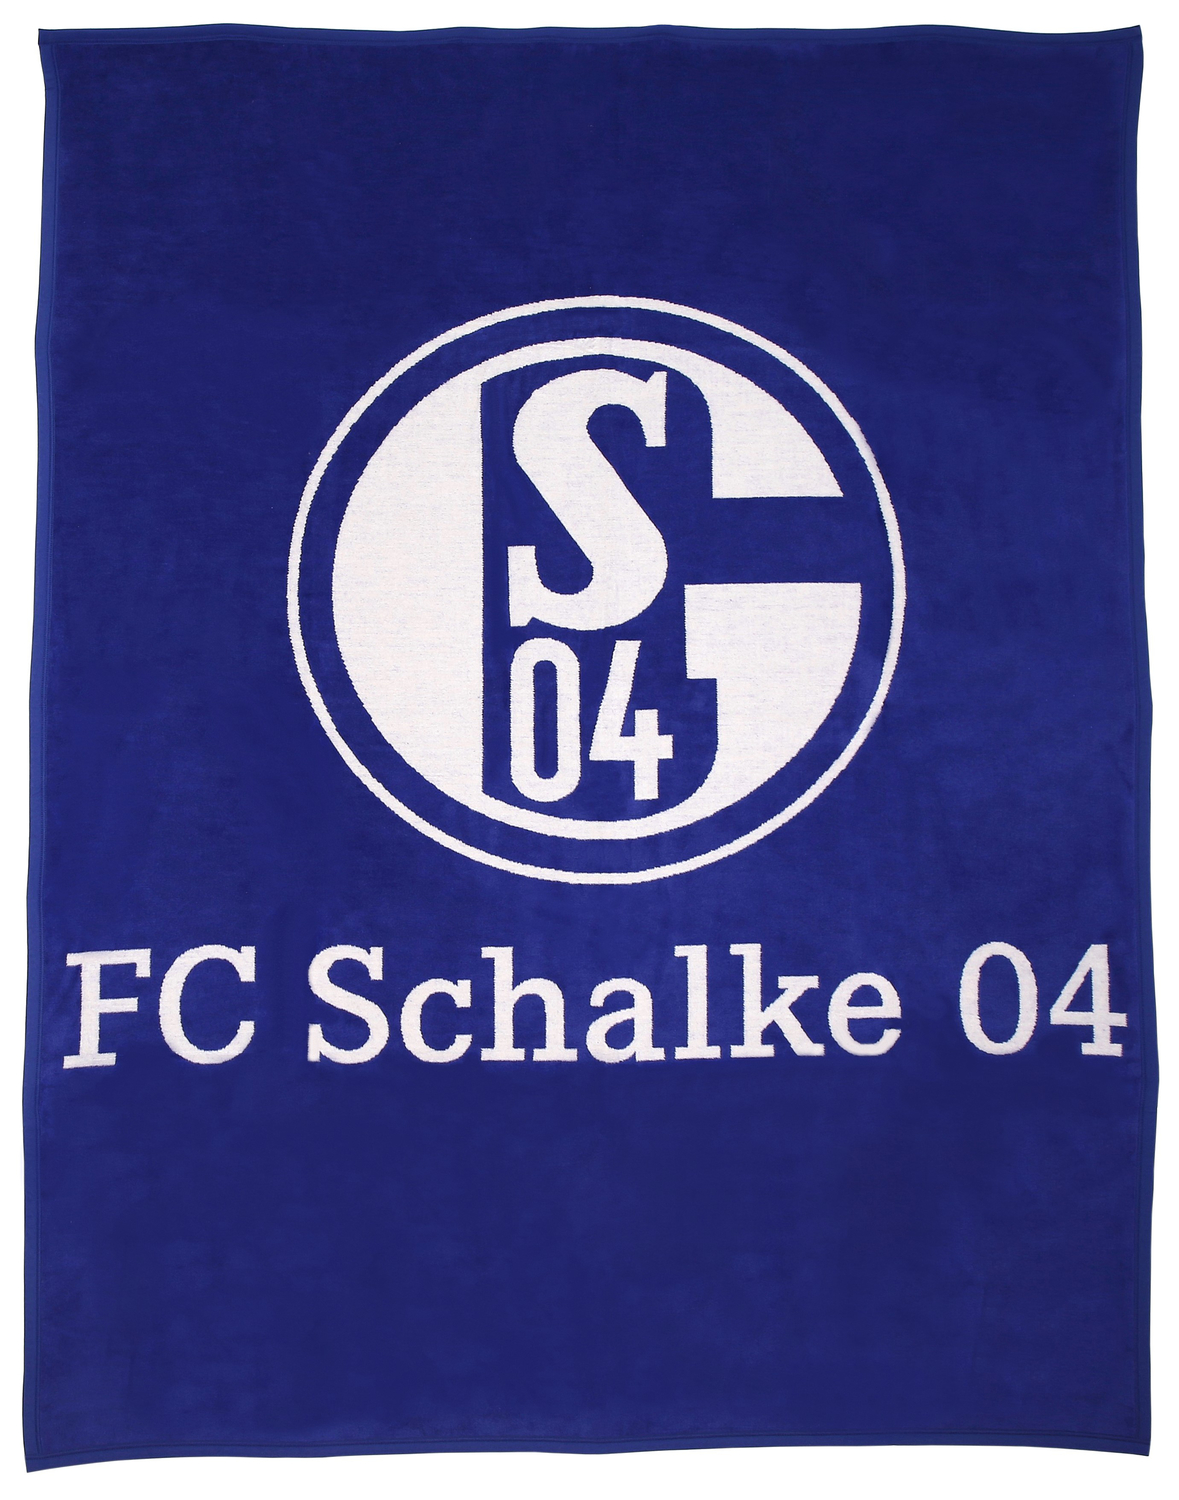 fc schalke 04 veloursdecke plakat 150x200cm. Black Bedroom Furniture Sets. Home Design Ideas